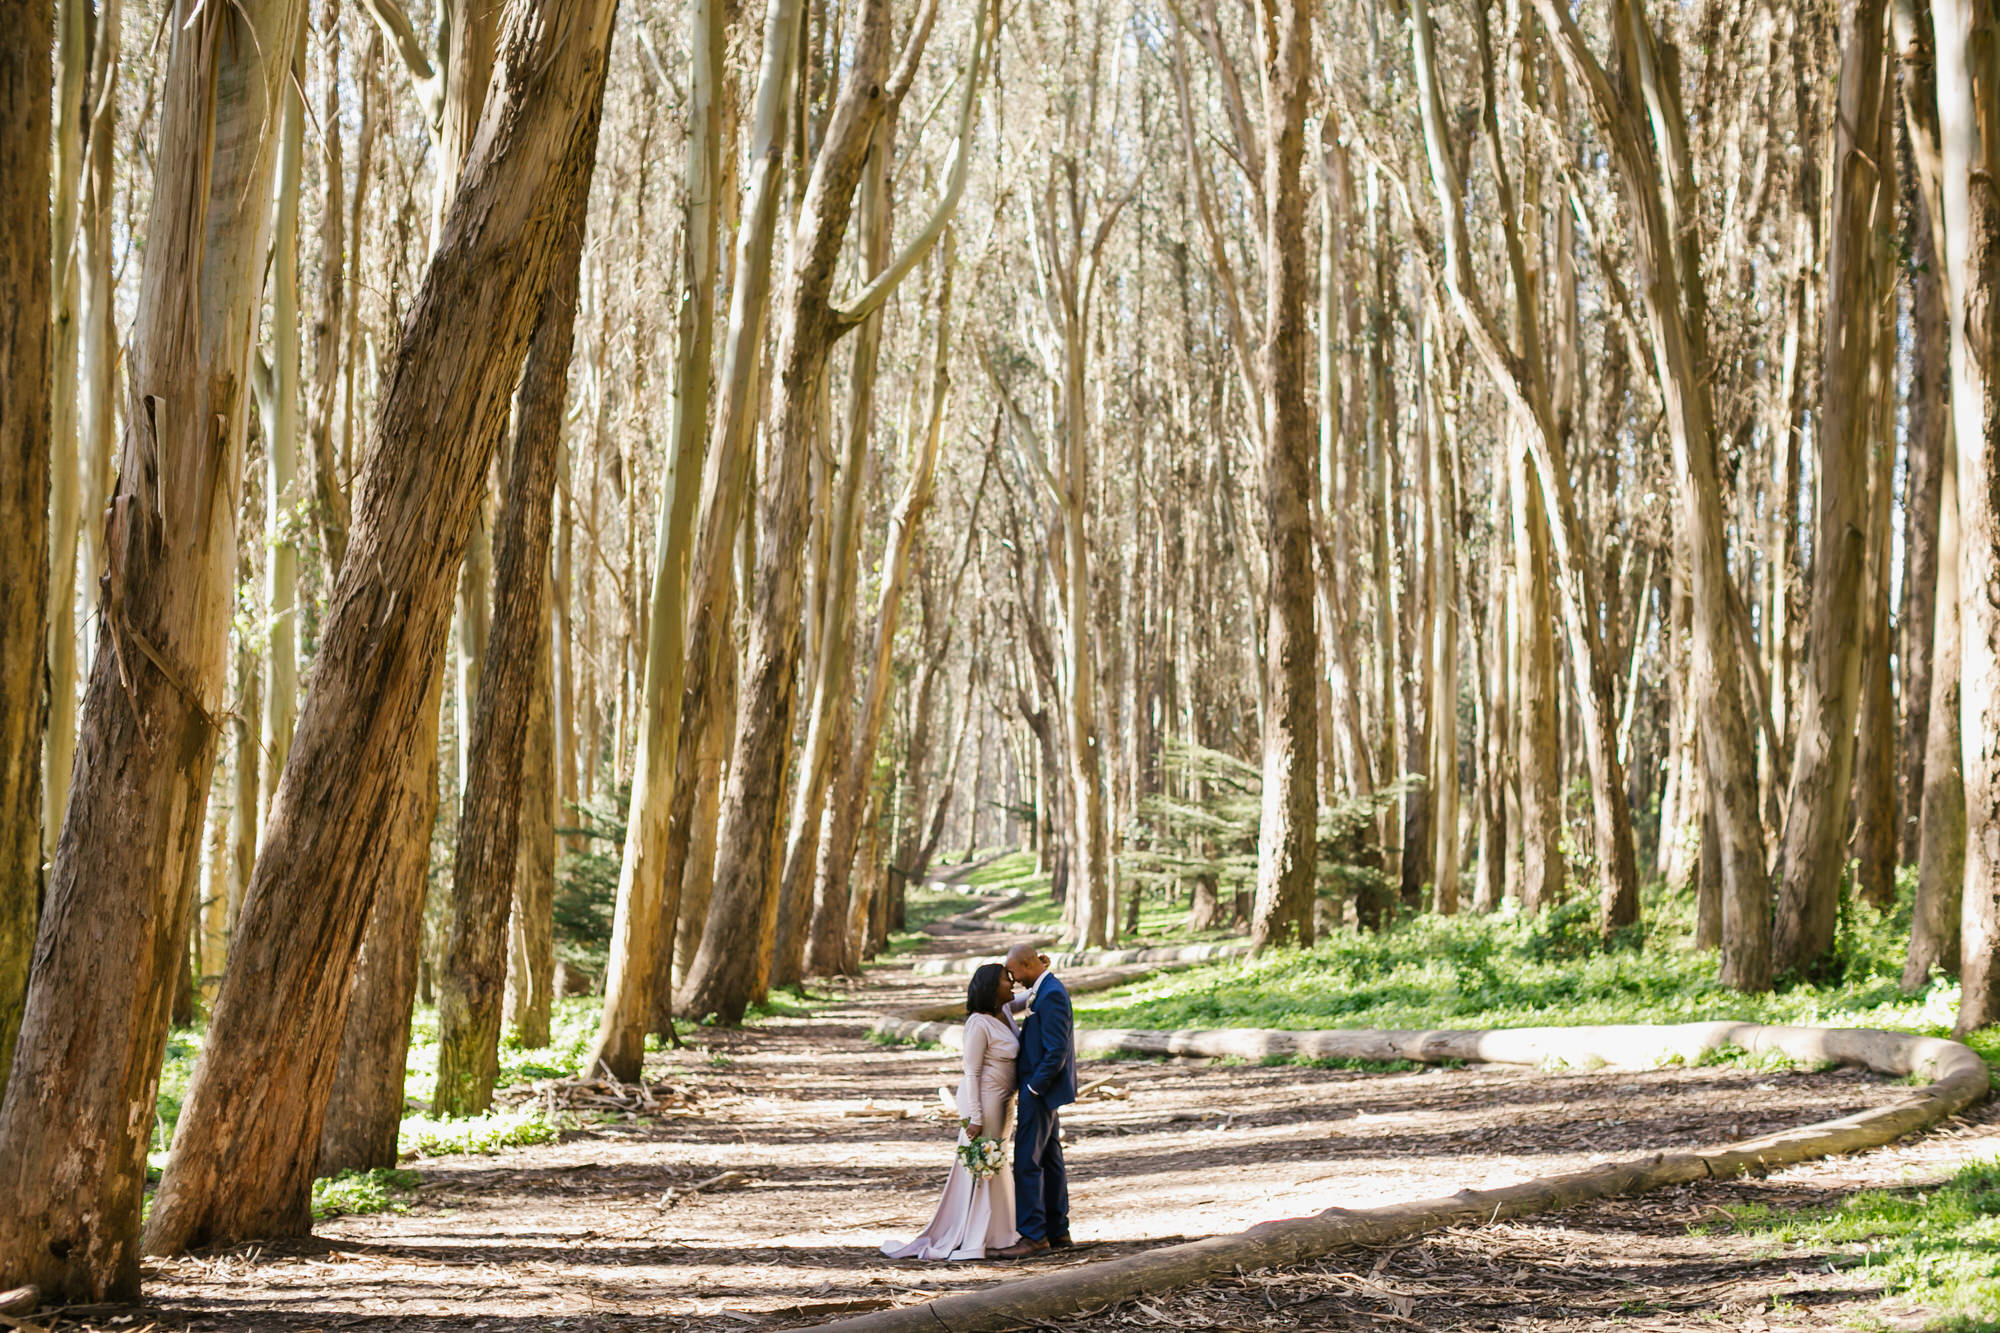 A wedding couple stand together at Wood Line in the Presidio among the eucalyptus trees.